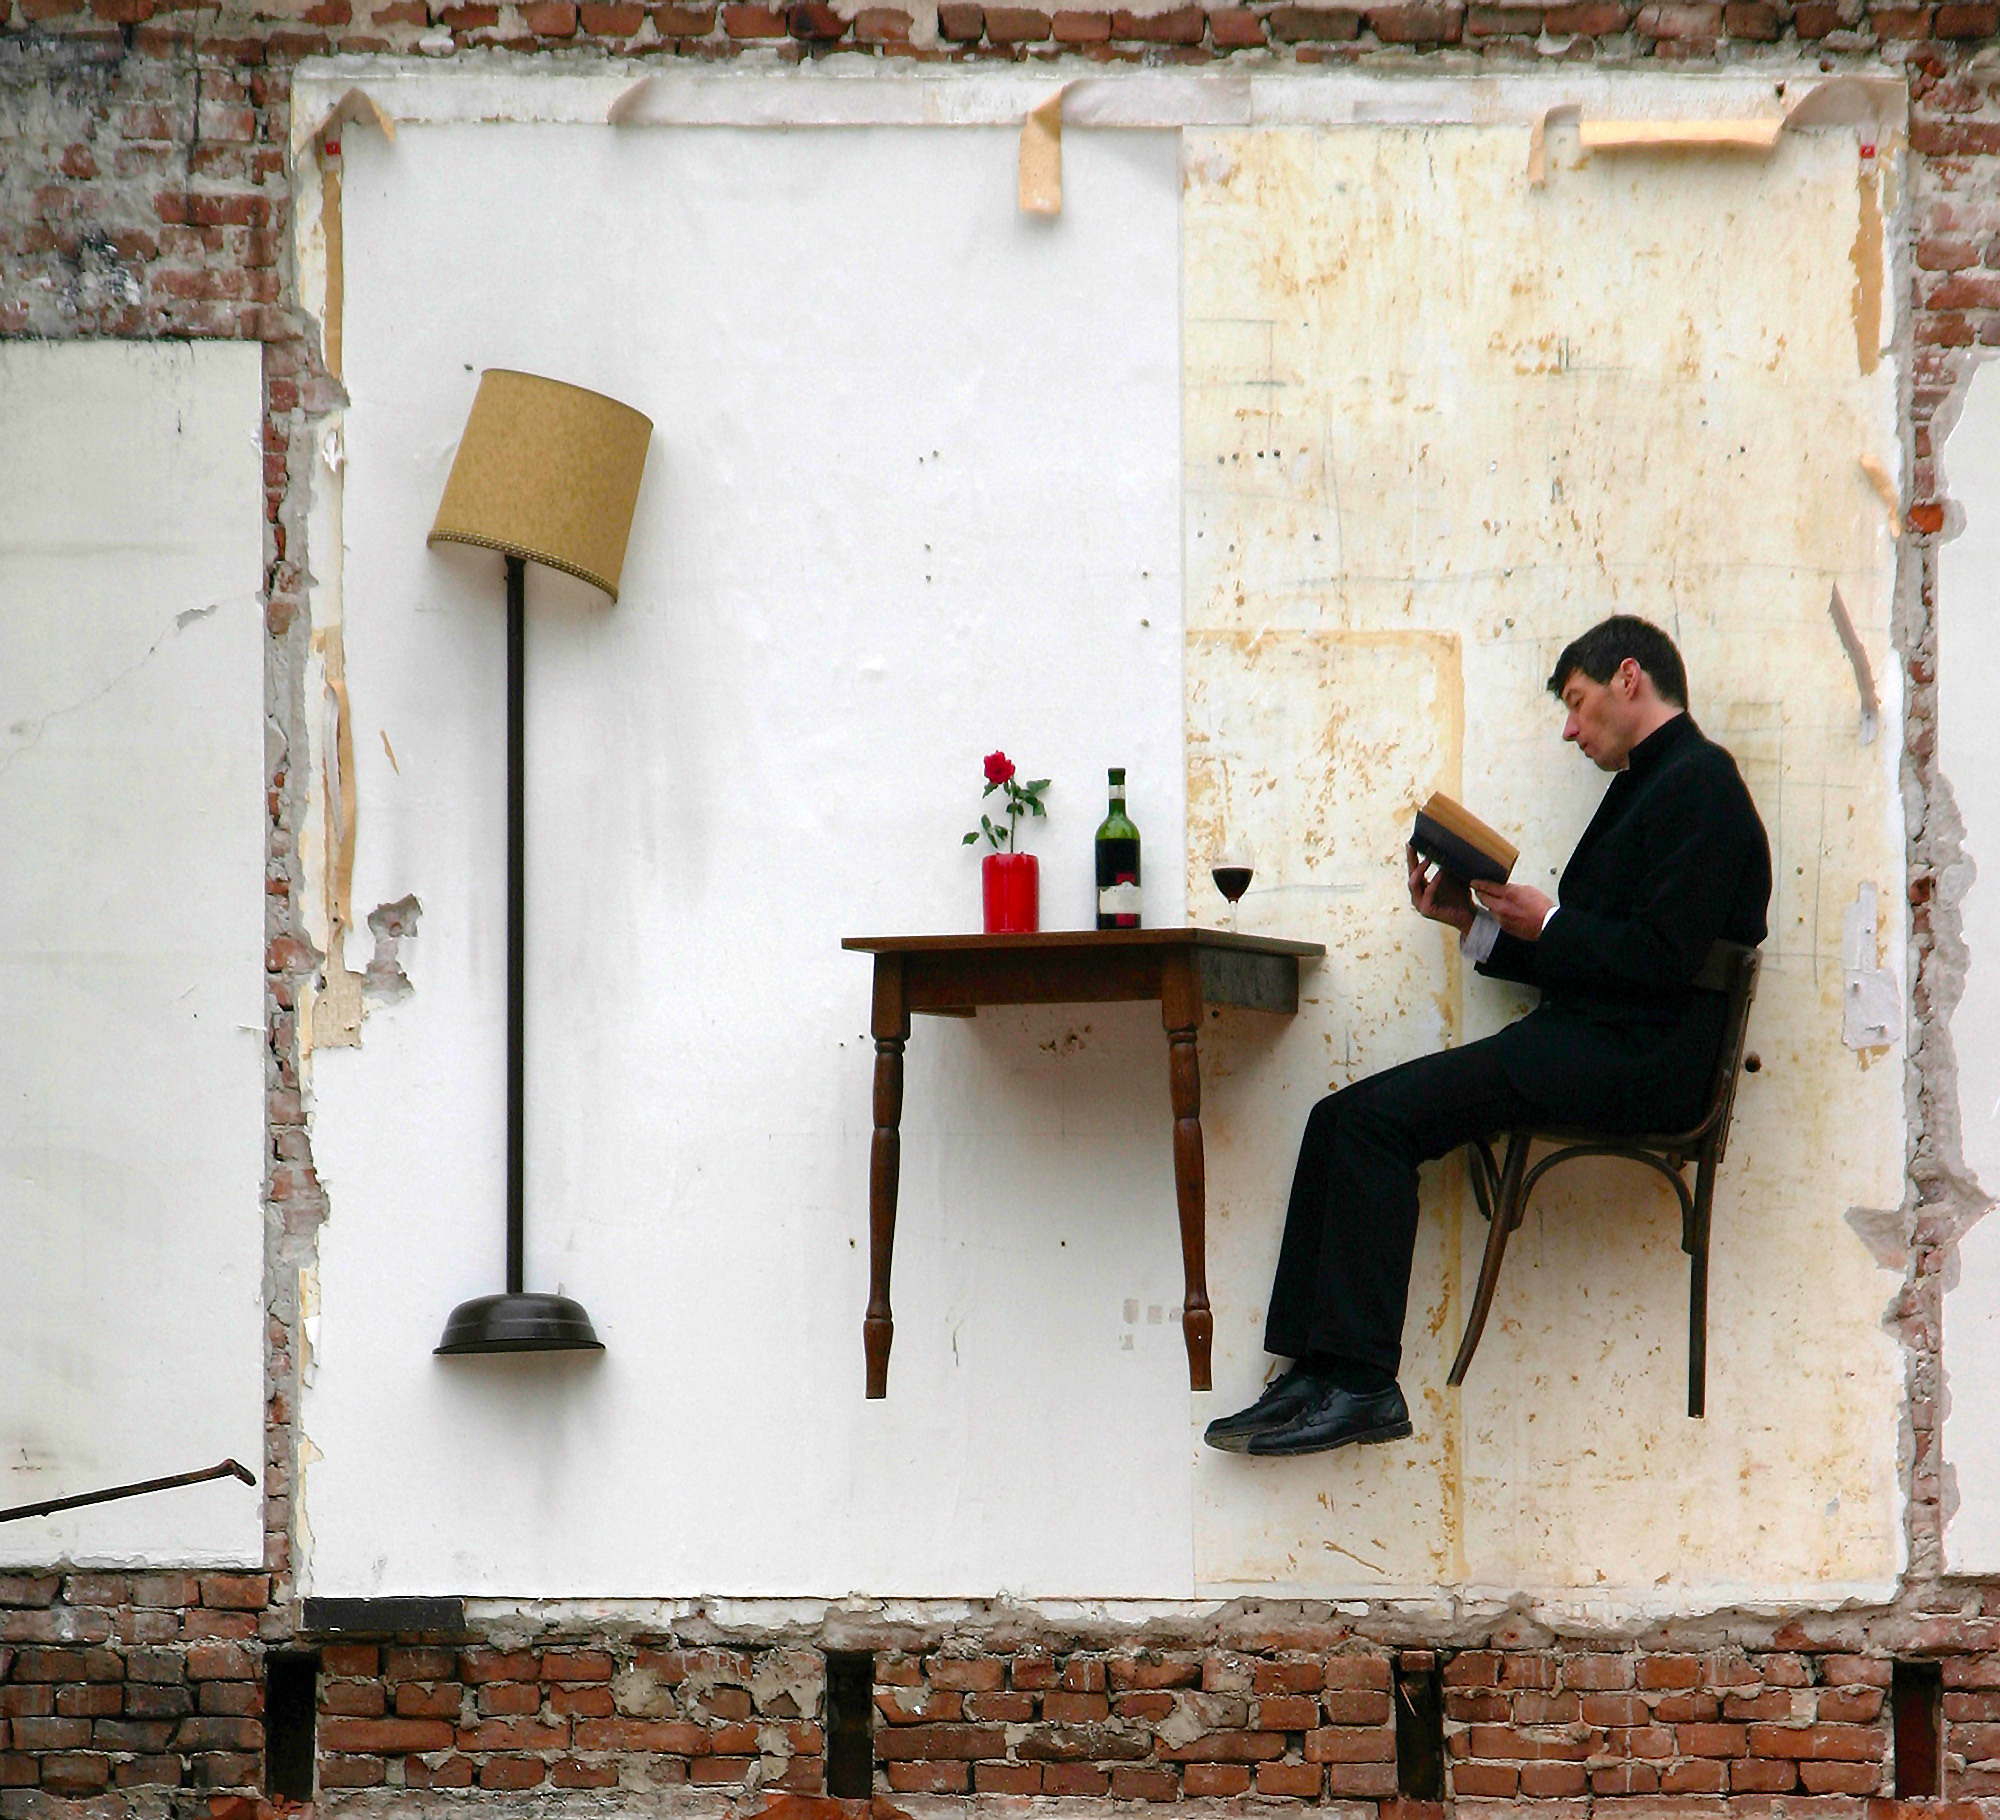 Artist Thierry Mandon Lives in Suspended Domestic Scenes Within the Ghost Rooms of Severed Buildings